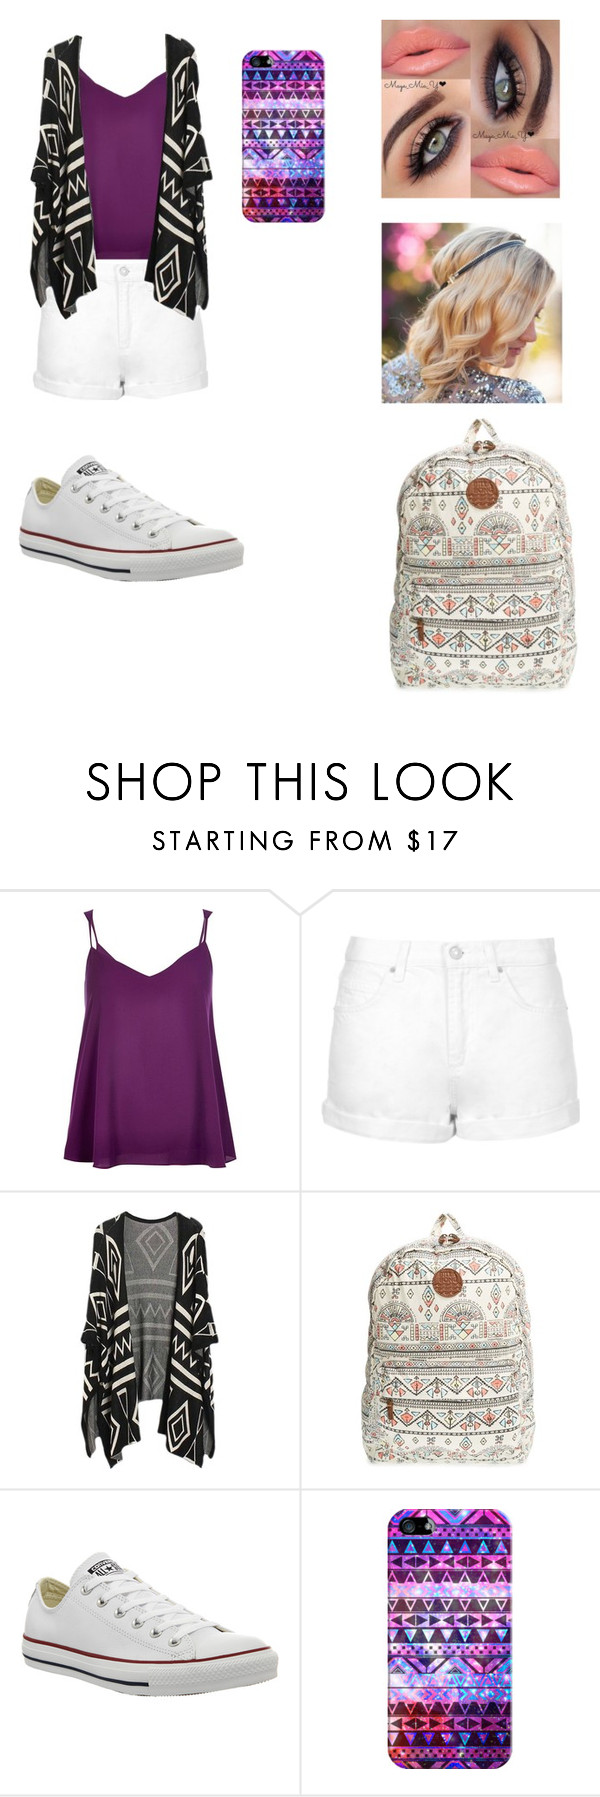 """Untitled #44"" by samy-101 ❤ liked on Polyvore featuring interior, interiors, interior design, home, home decor, interior decorating, River Island, Topshop, Billabong and Converse"